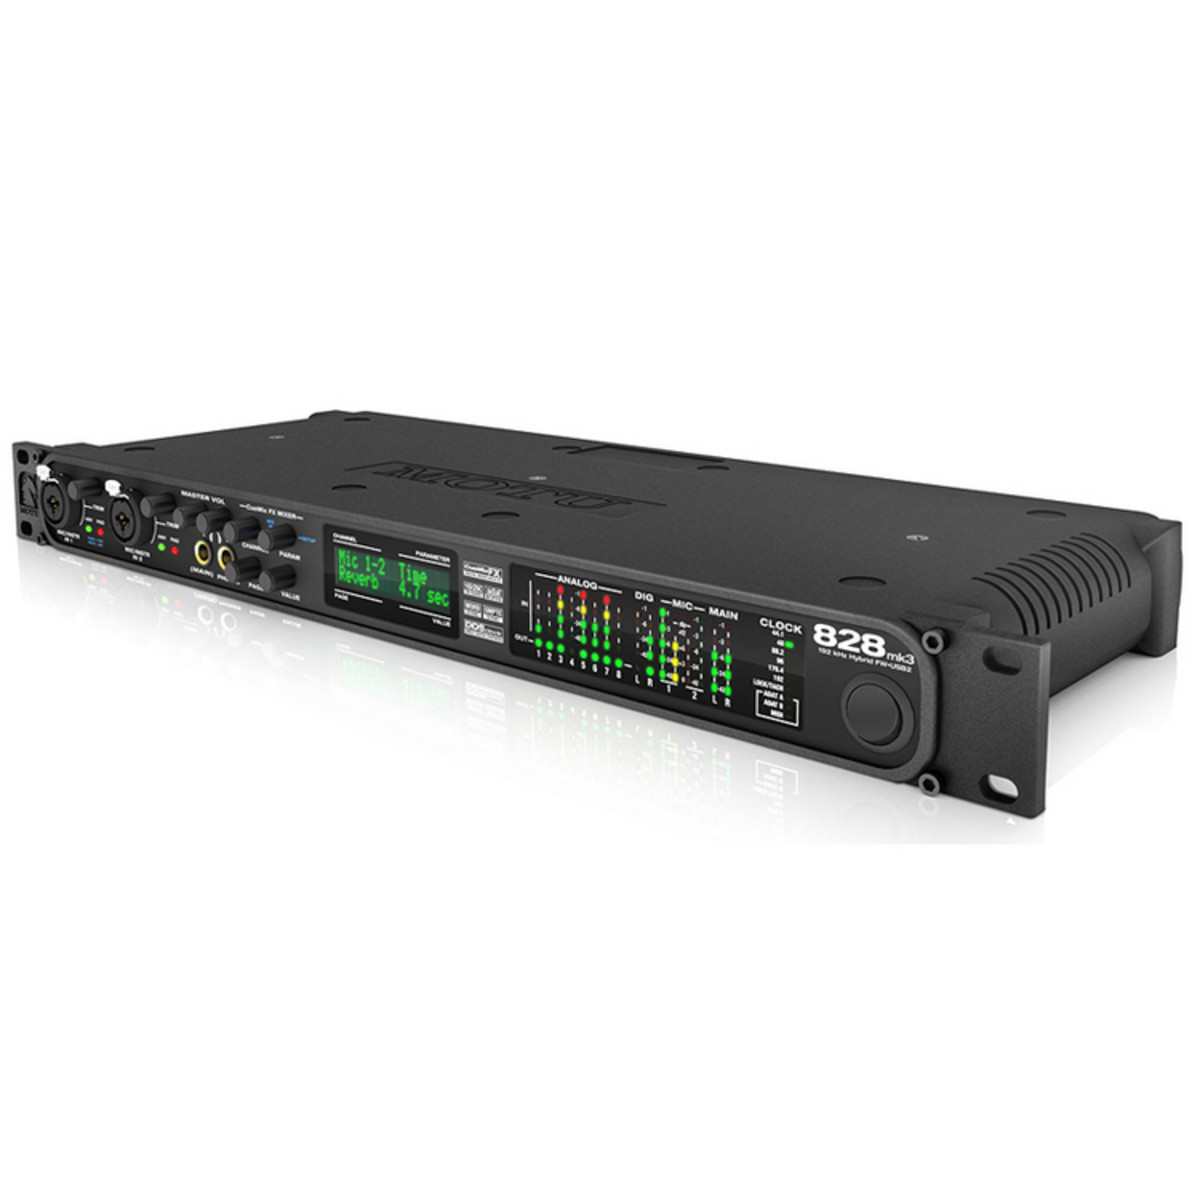 Click to view product details and reviews for Motu 828 Mk3 Hybrid Firewire Usb Audio Interface.